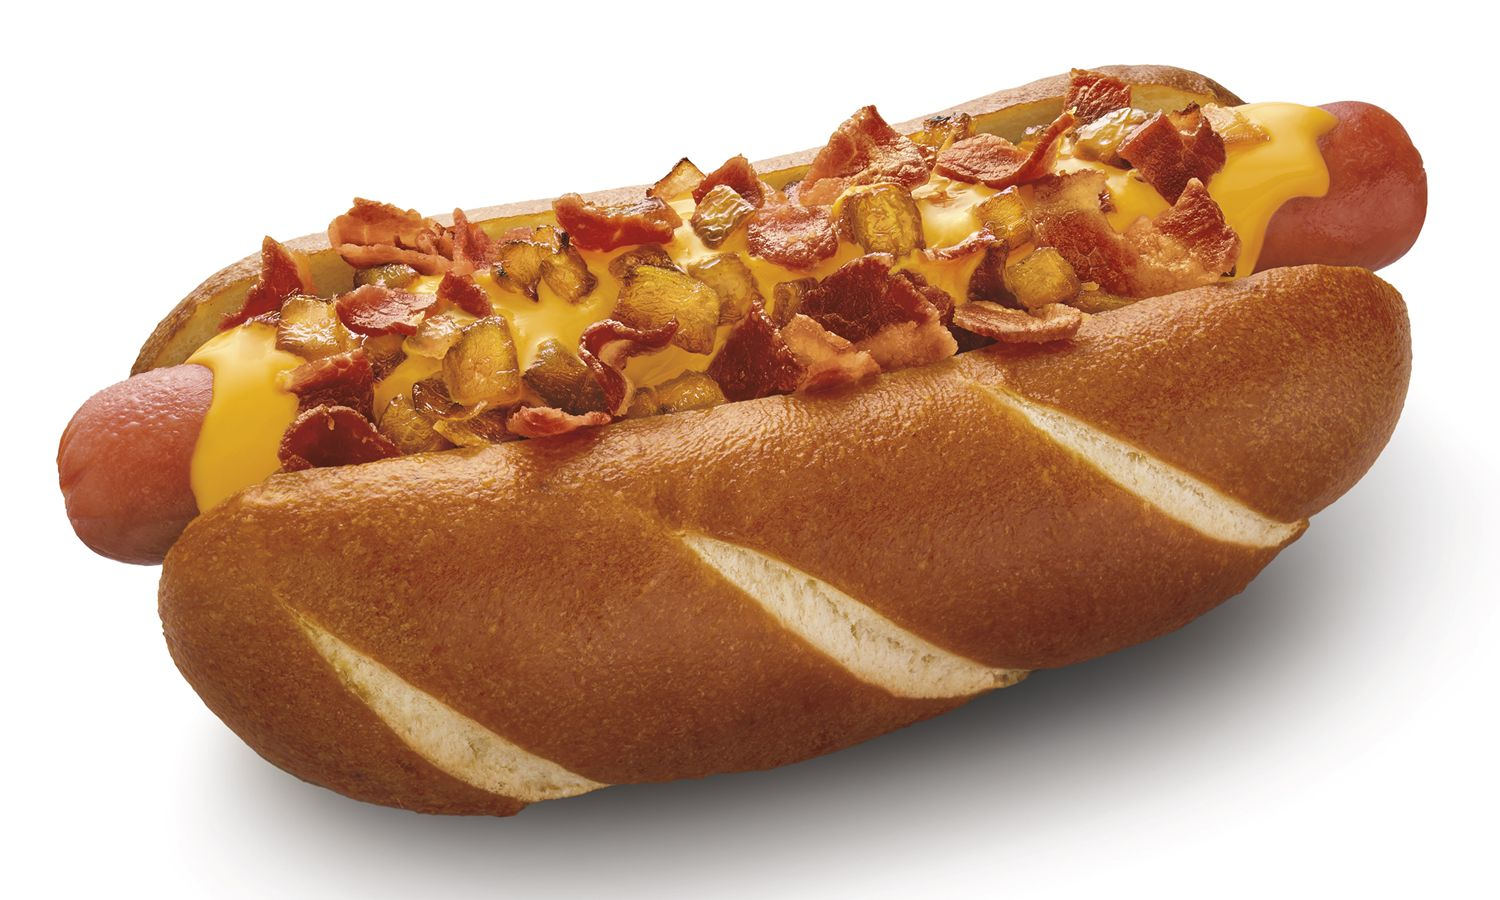 Back by Popular Demand, SONIC Welcomes Pretzel Dogs to Hot Dog Lineup